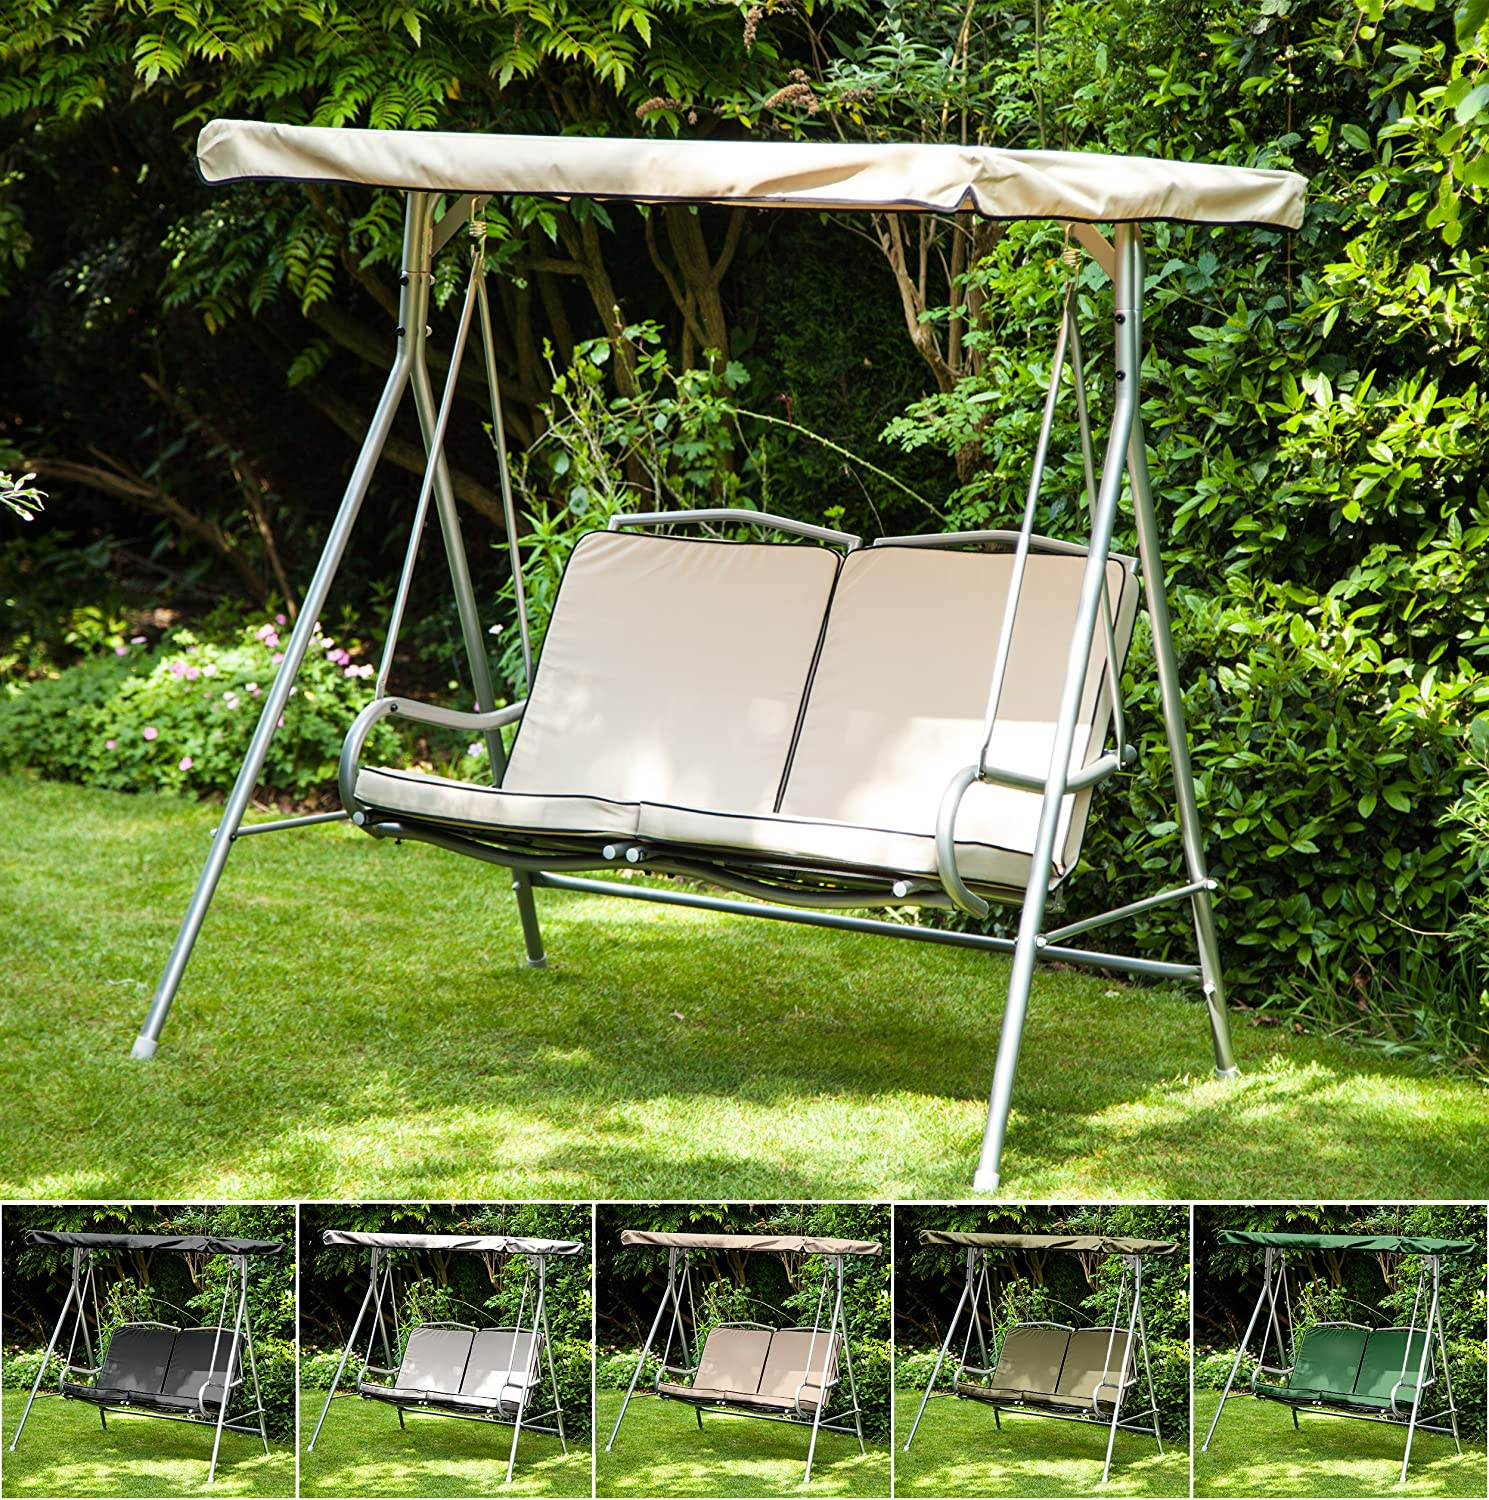 Grey Water Resistant Seat Pad for 2 Seater Argos Malibu Swing Seat *Swing not Included* Gardenista